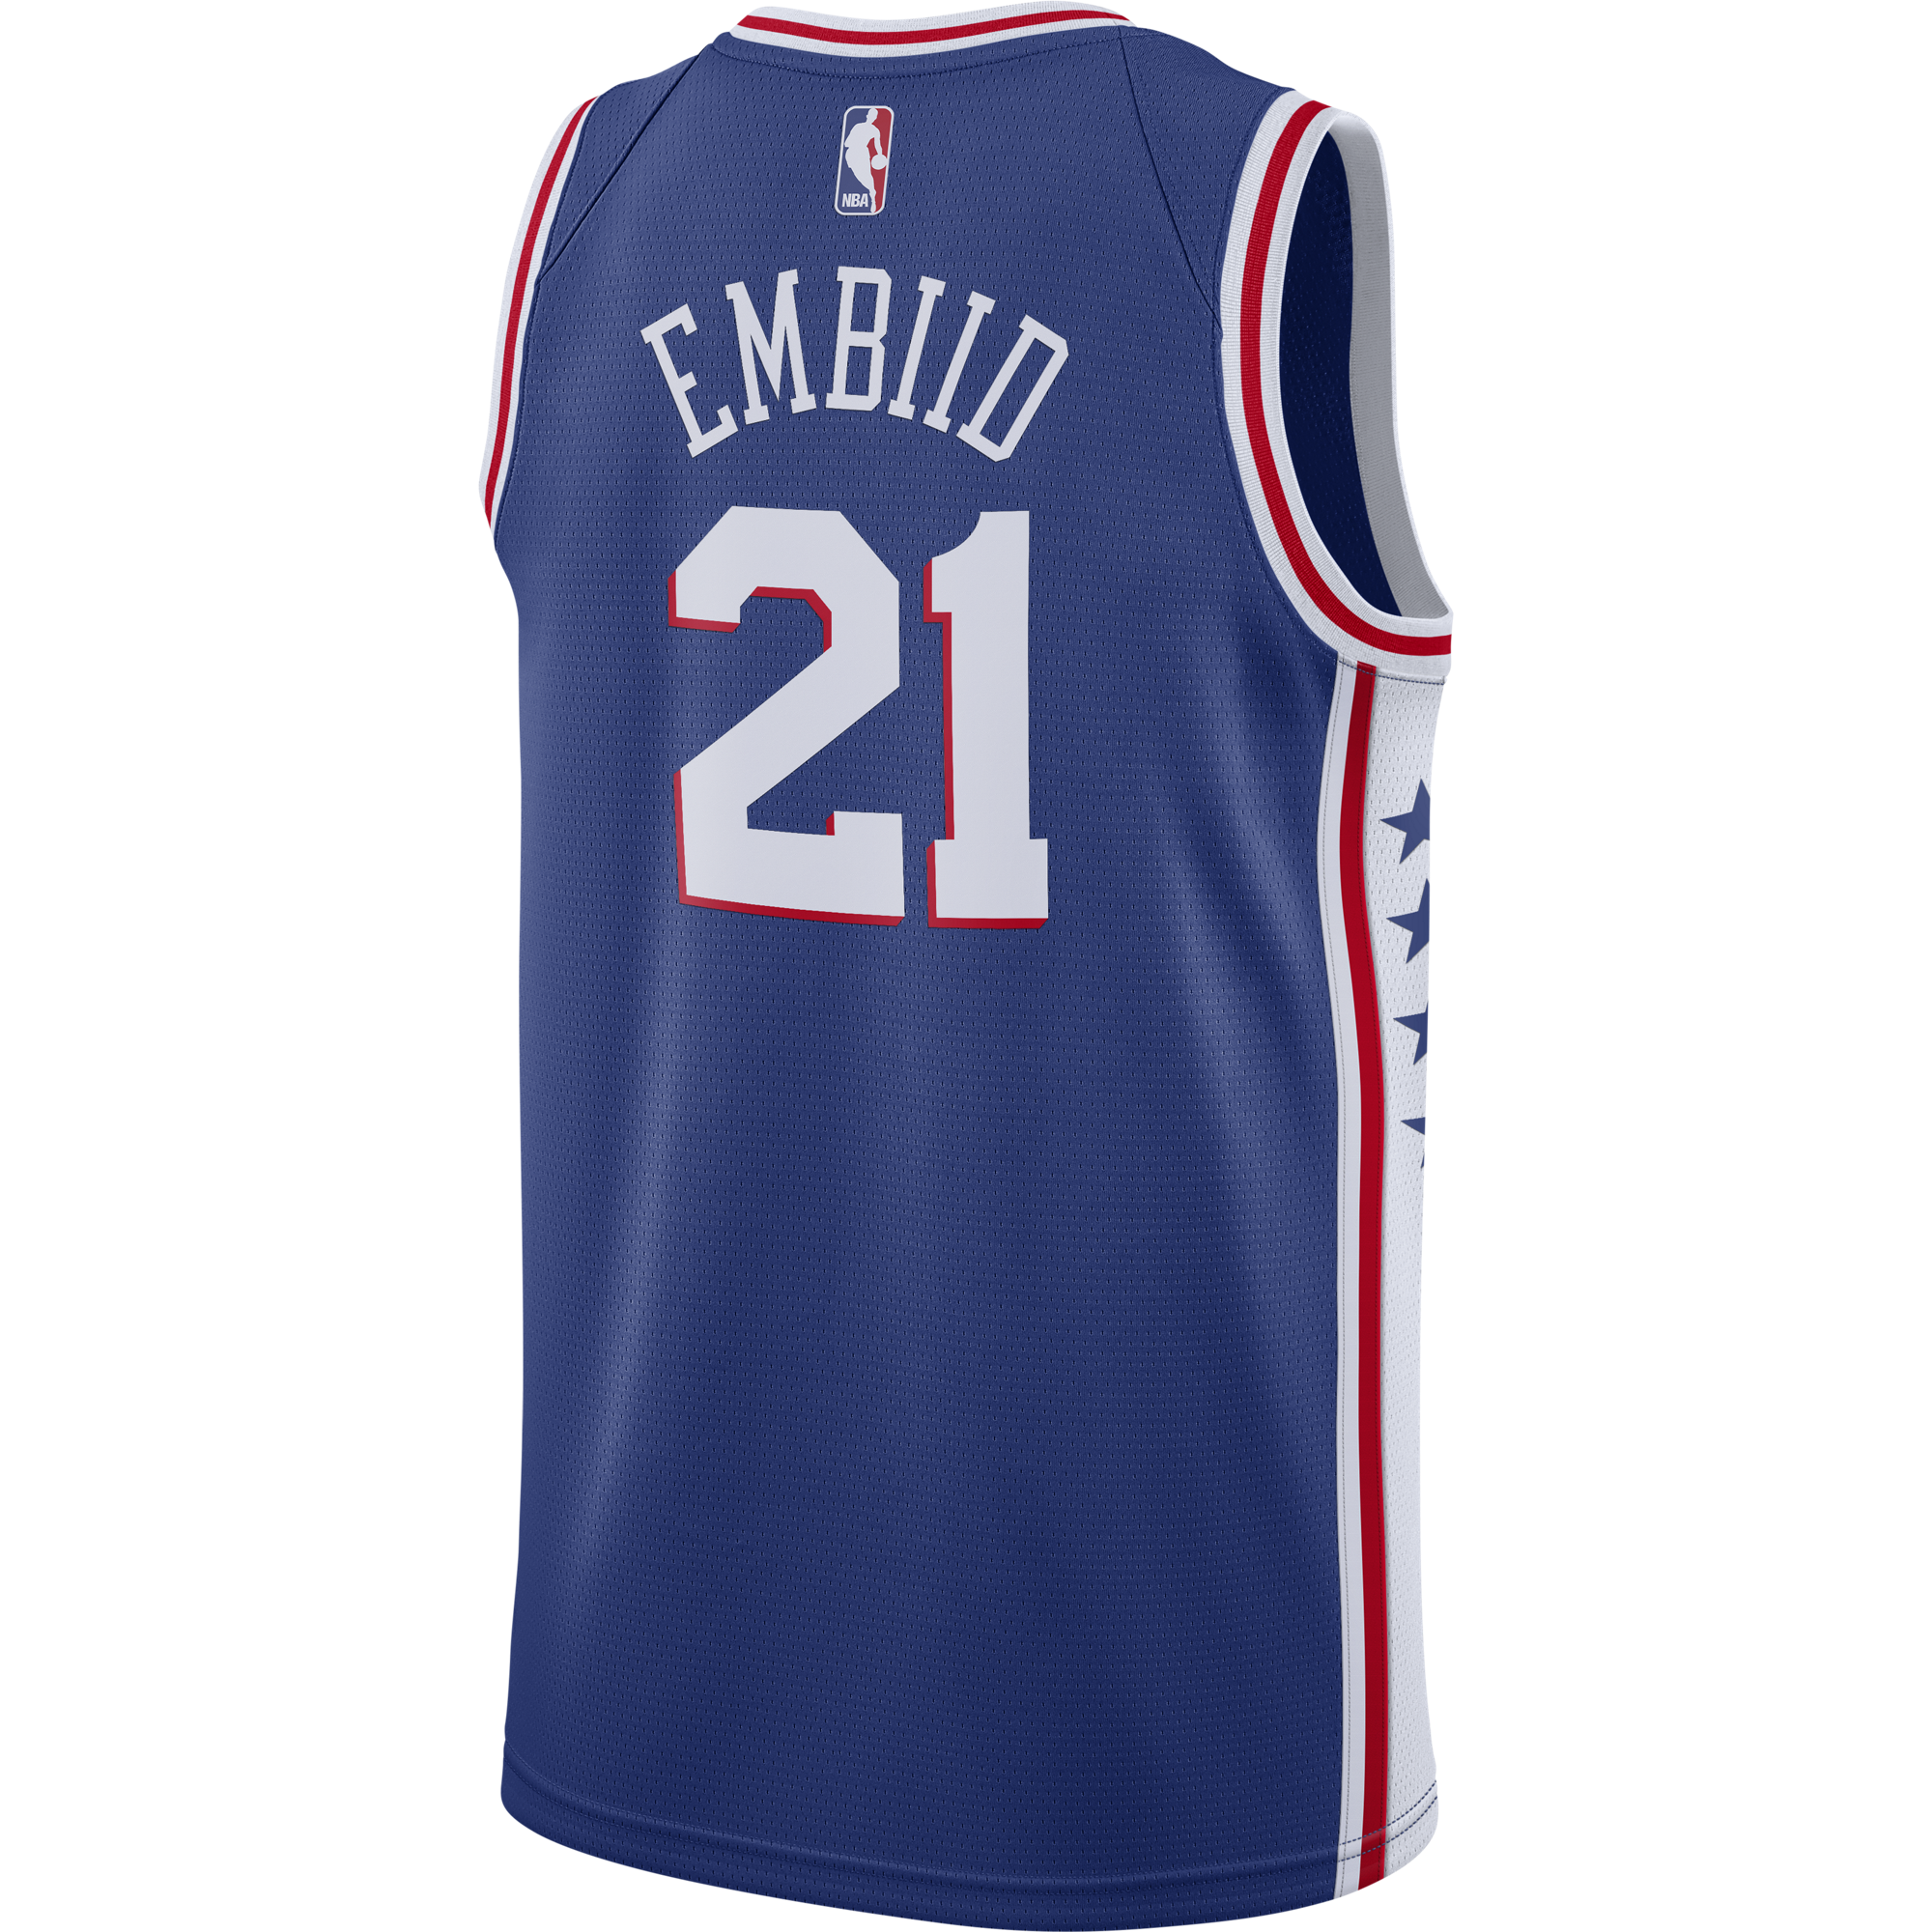 00894f81ce42 Philadelphia 76ers Men s Blue Joel Embiid Swingman Jersey by Nike ...